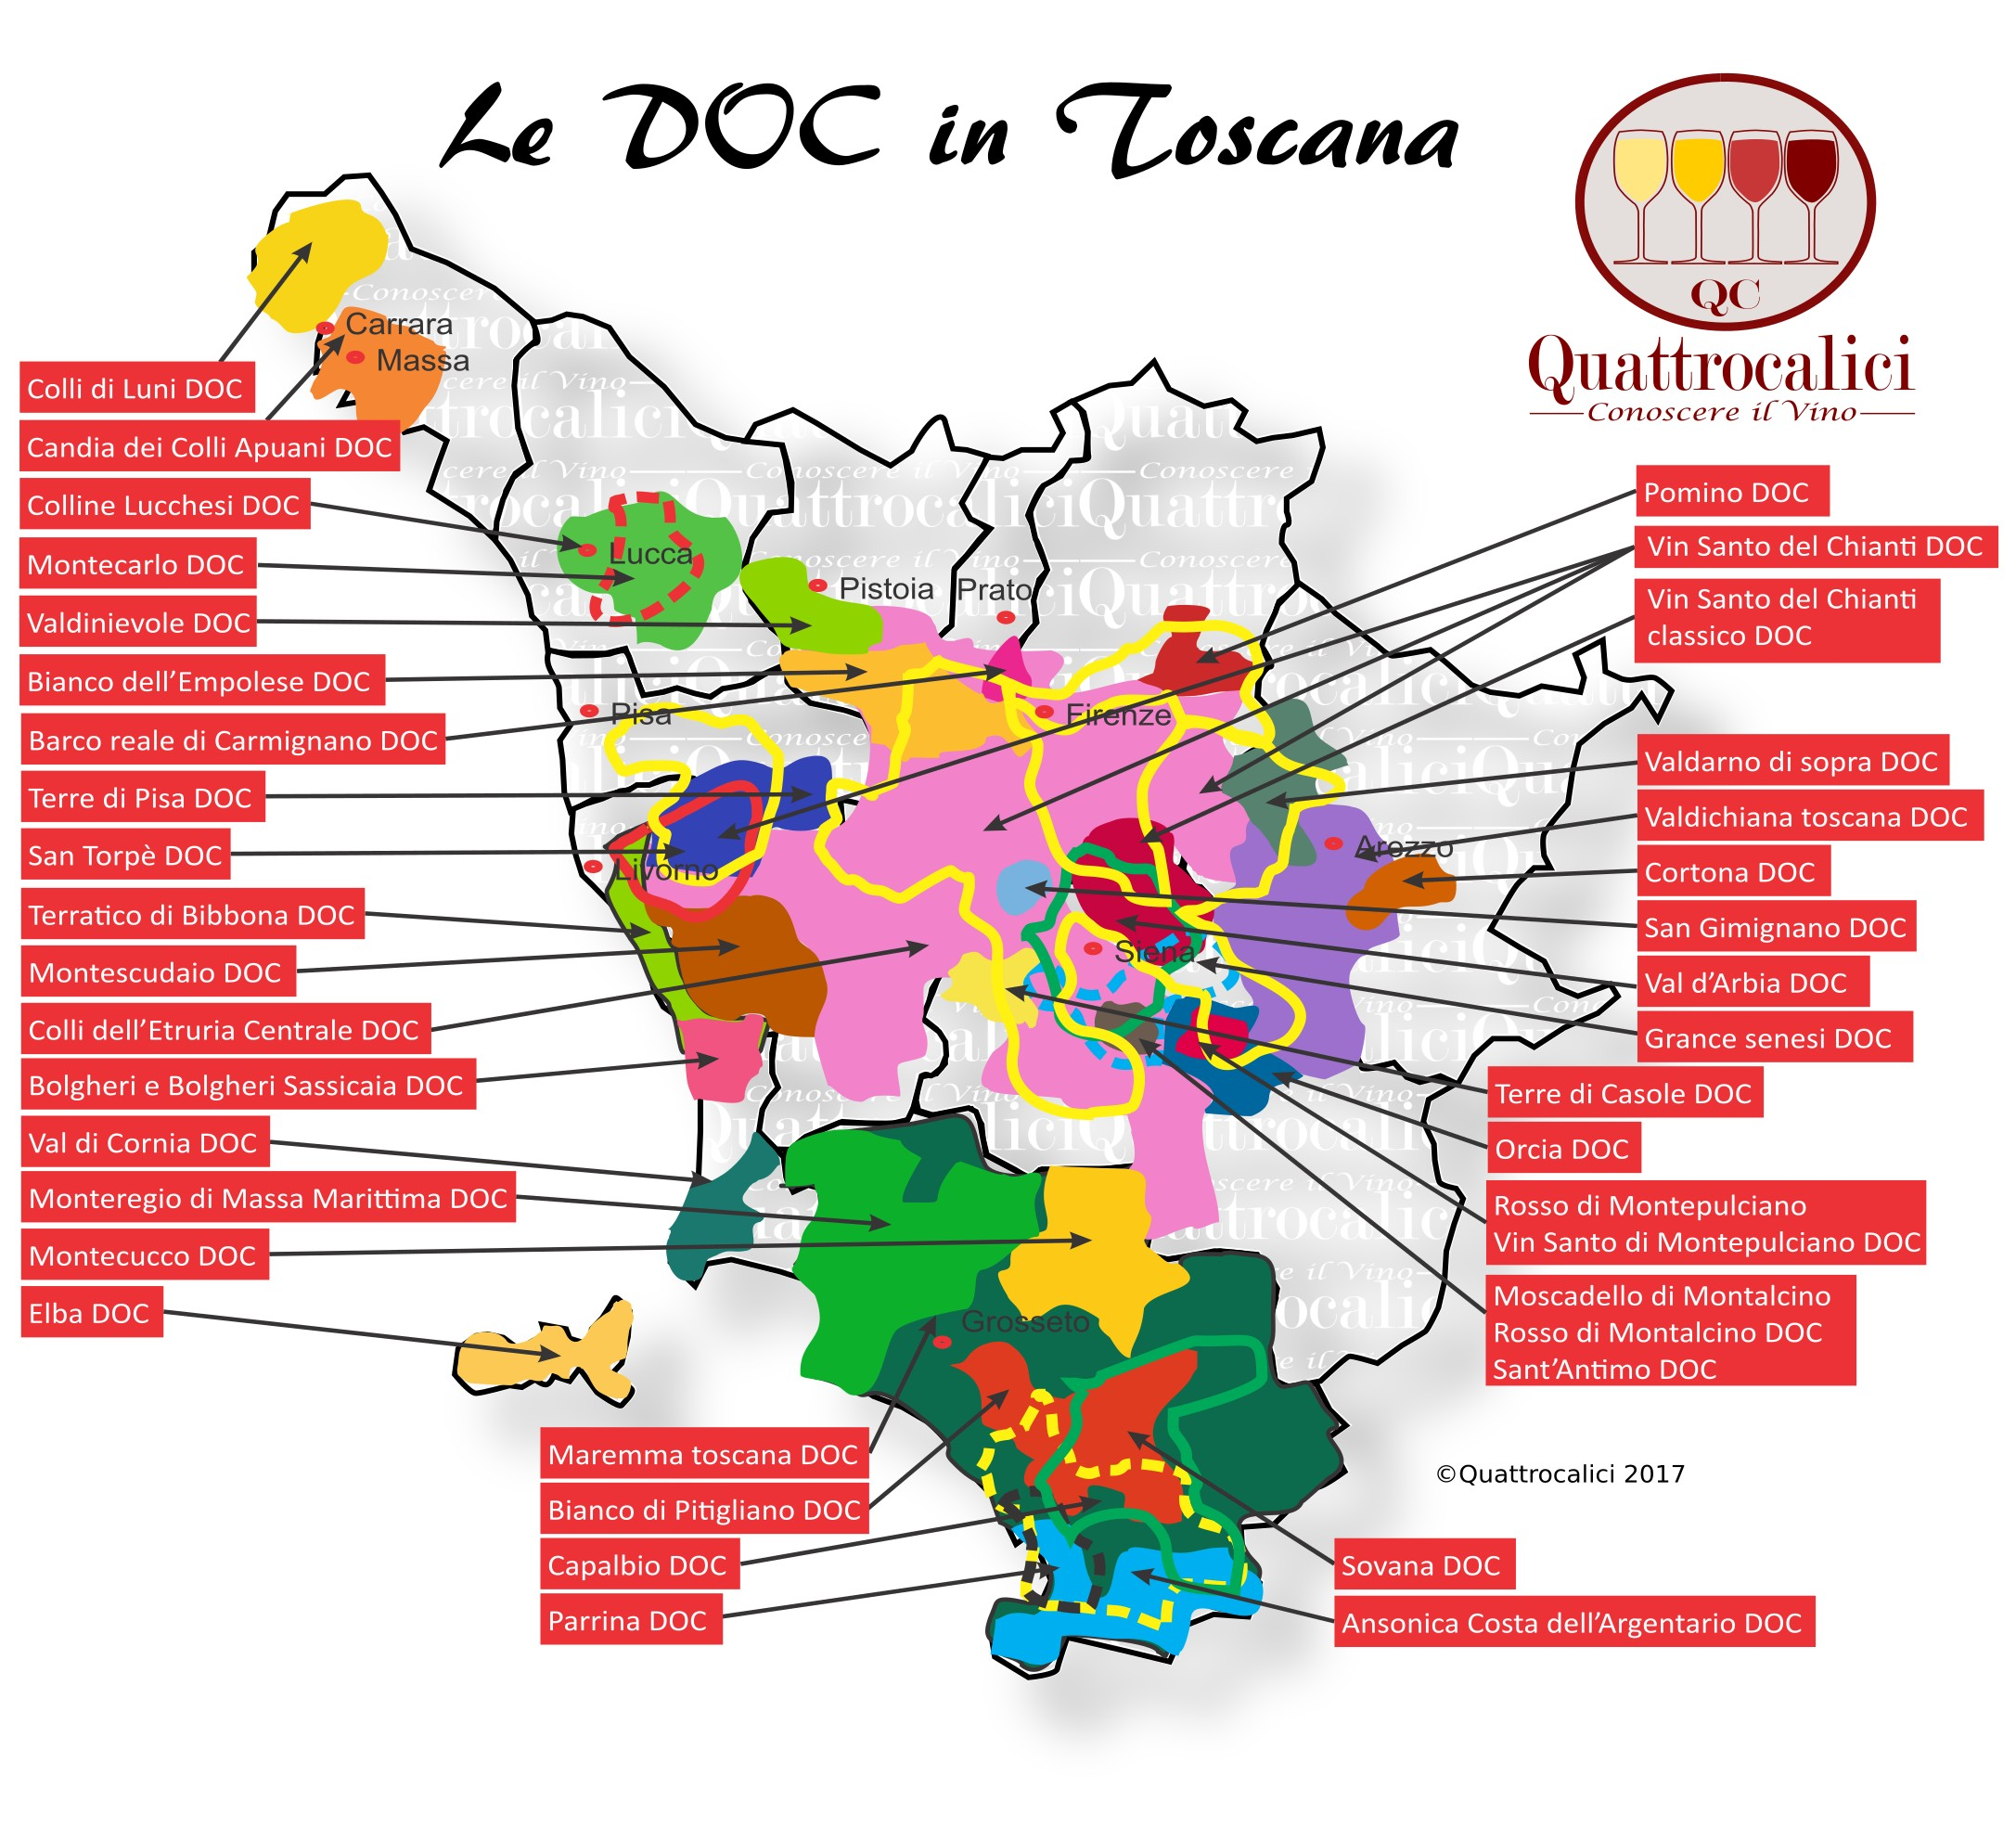 Le DOC in Toscana